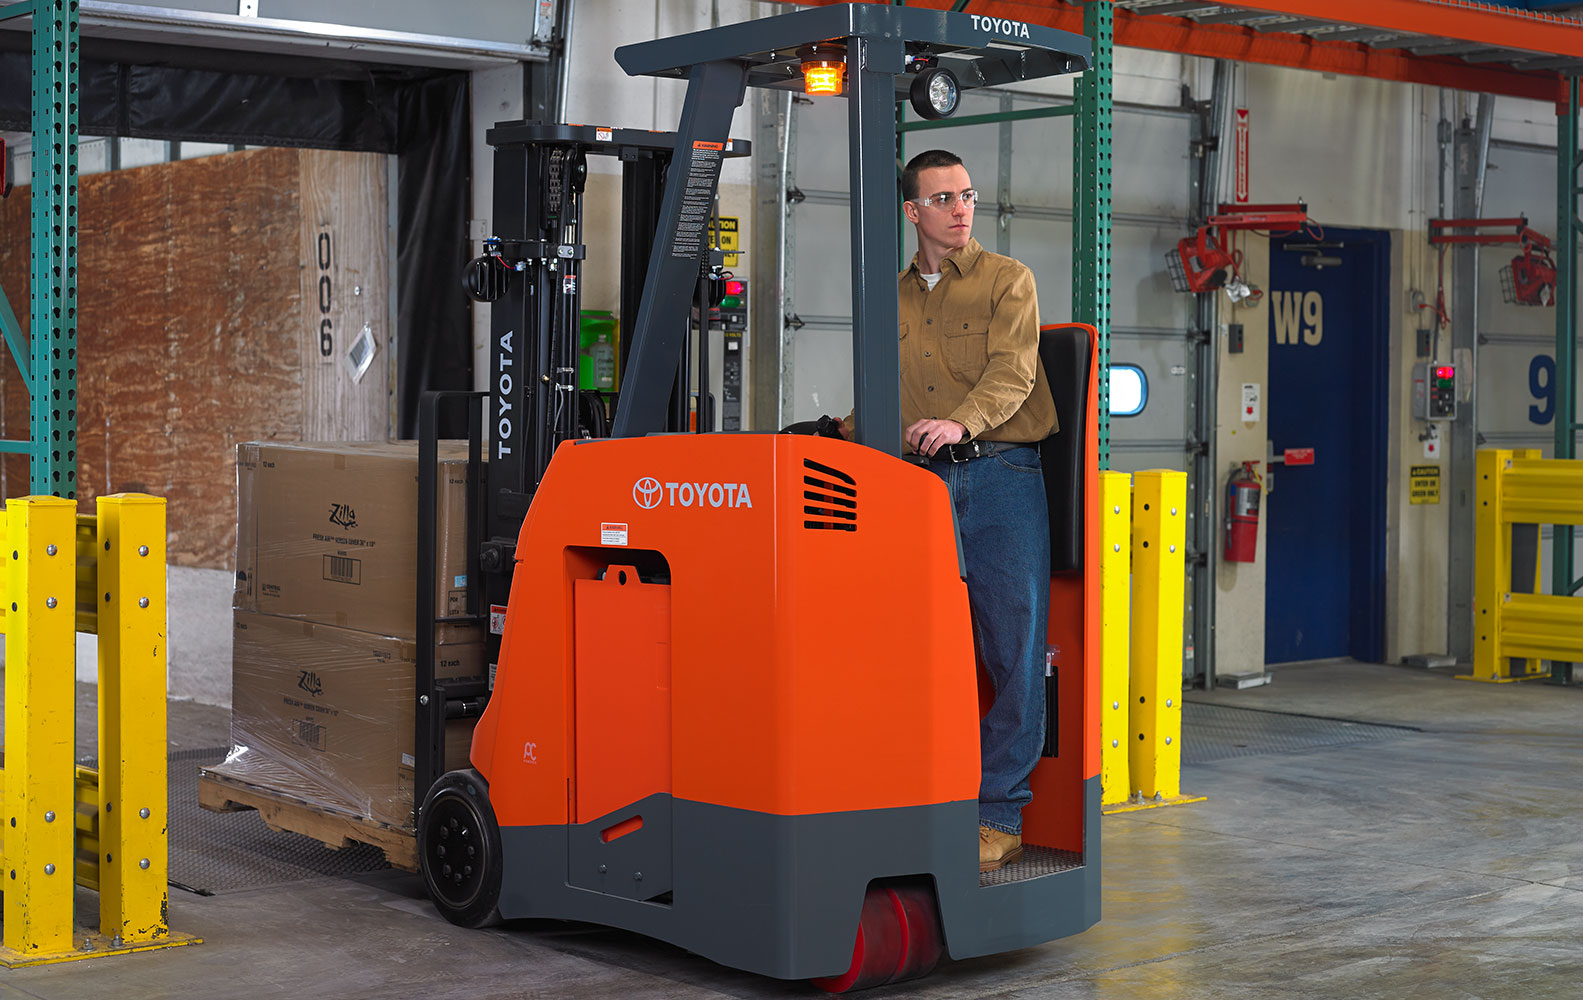 Forklift Safety: Strategies And Best Practices